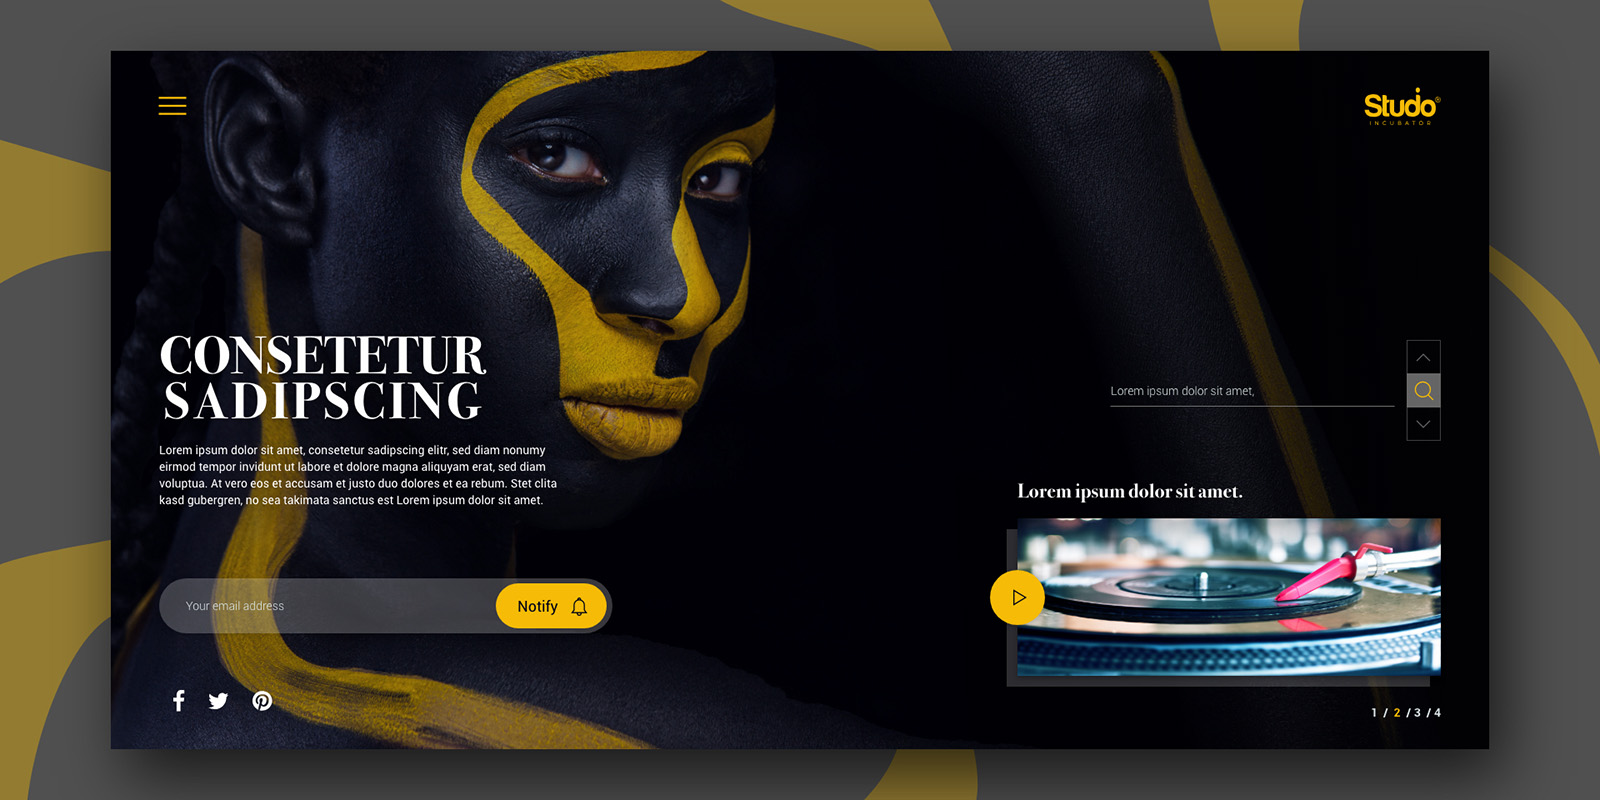 Studio Incubator – User Interface sample under website's gallery